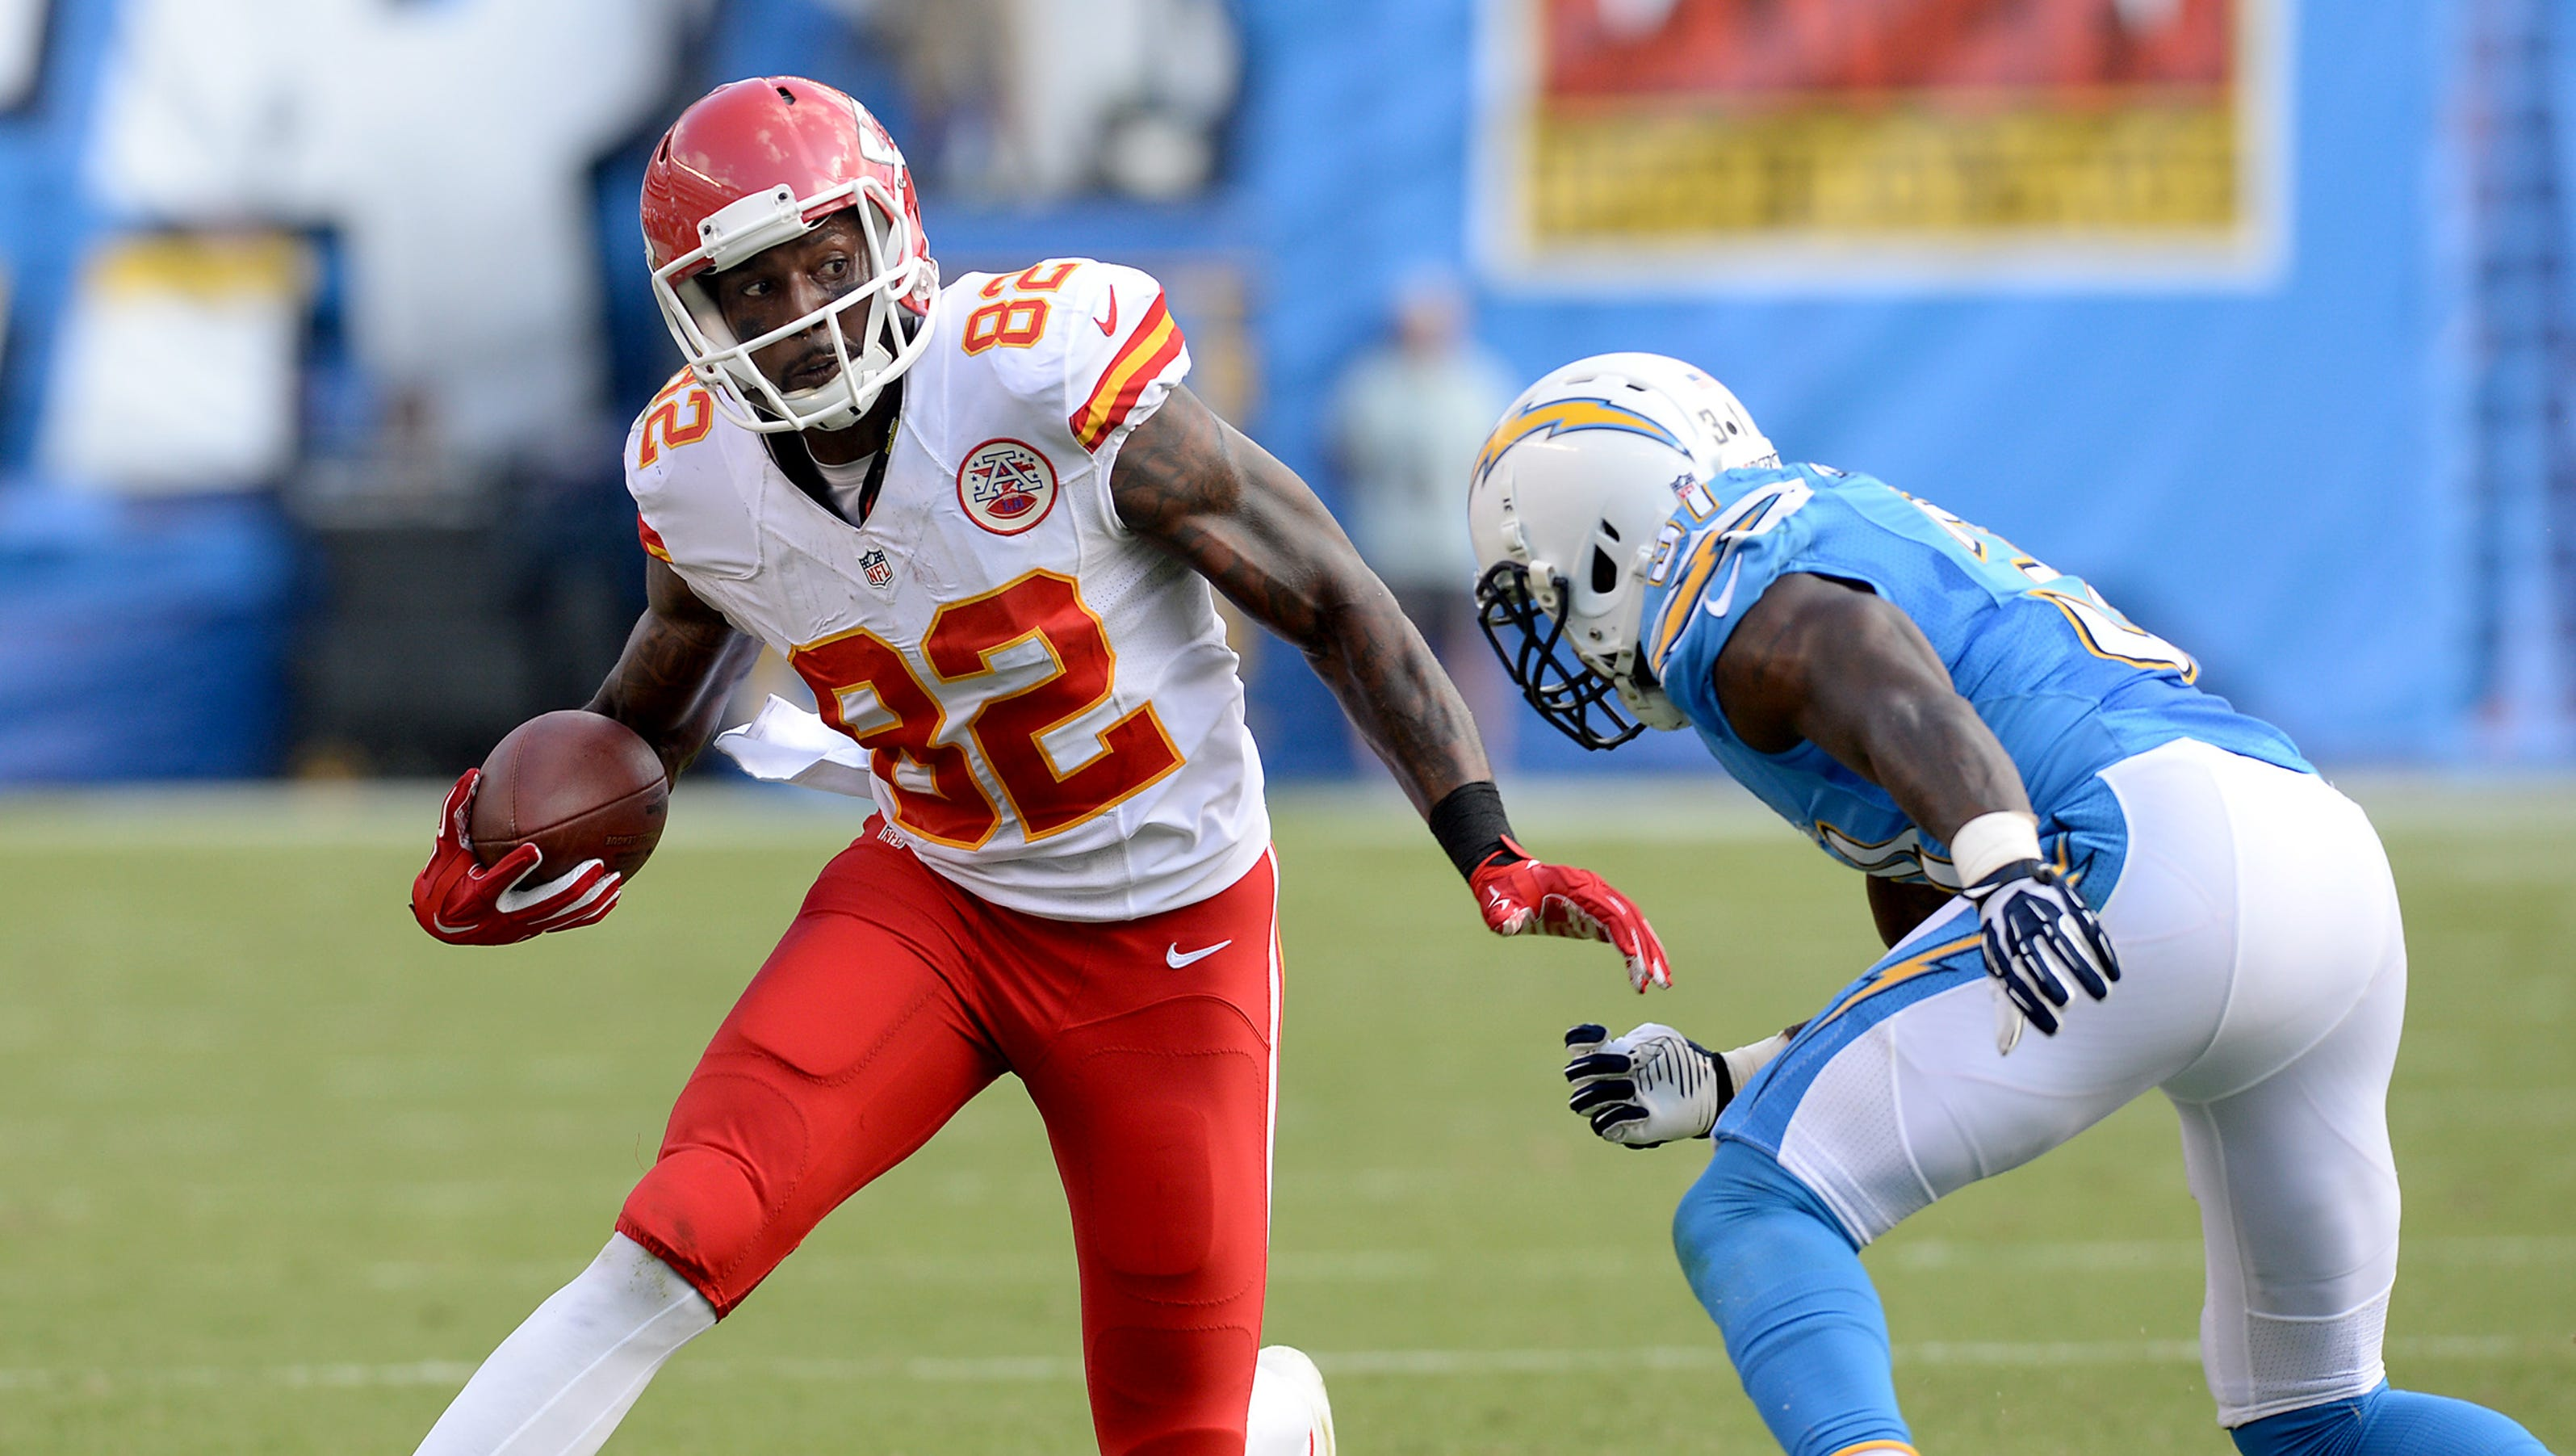 Santos 48 Yard Field Goal Lifts Chiefs Over Bolts